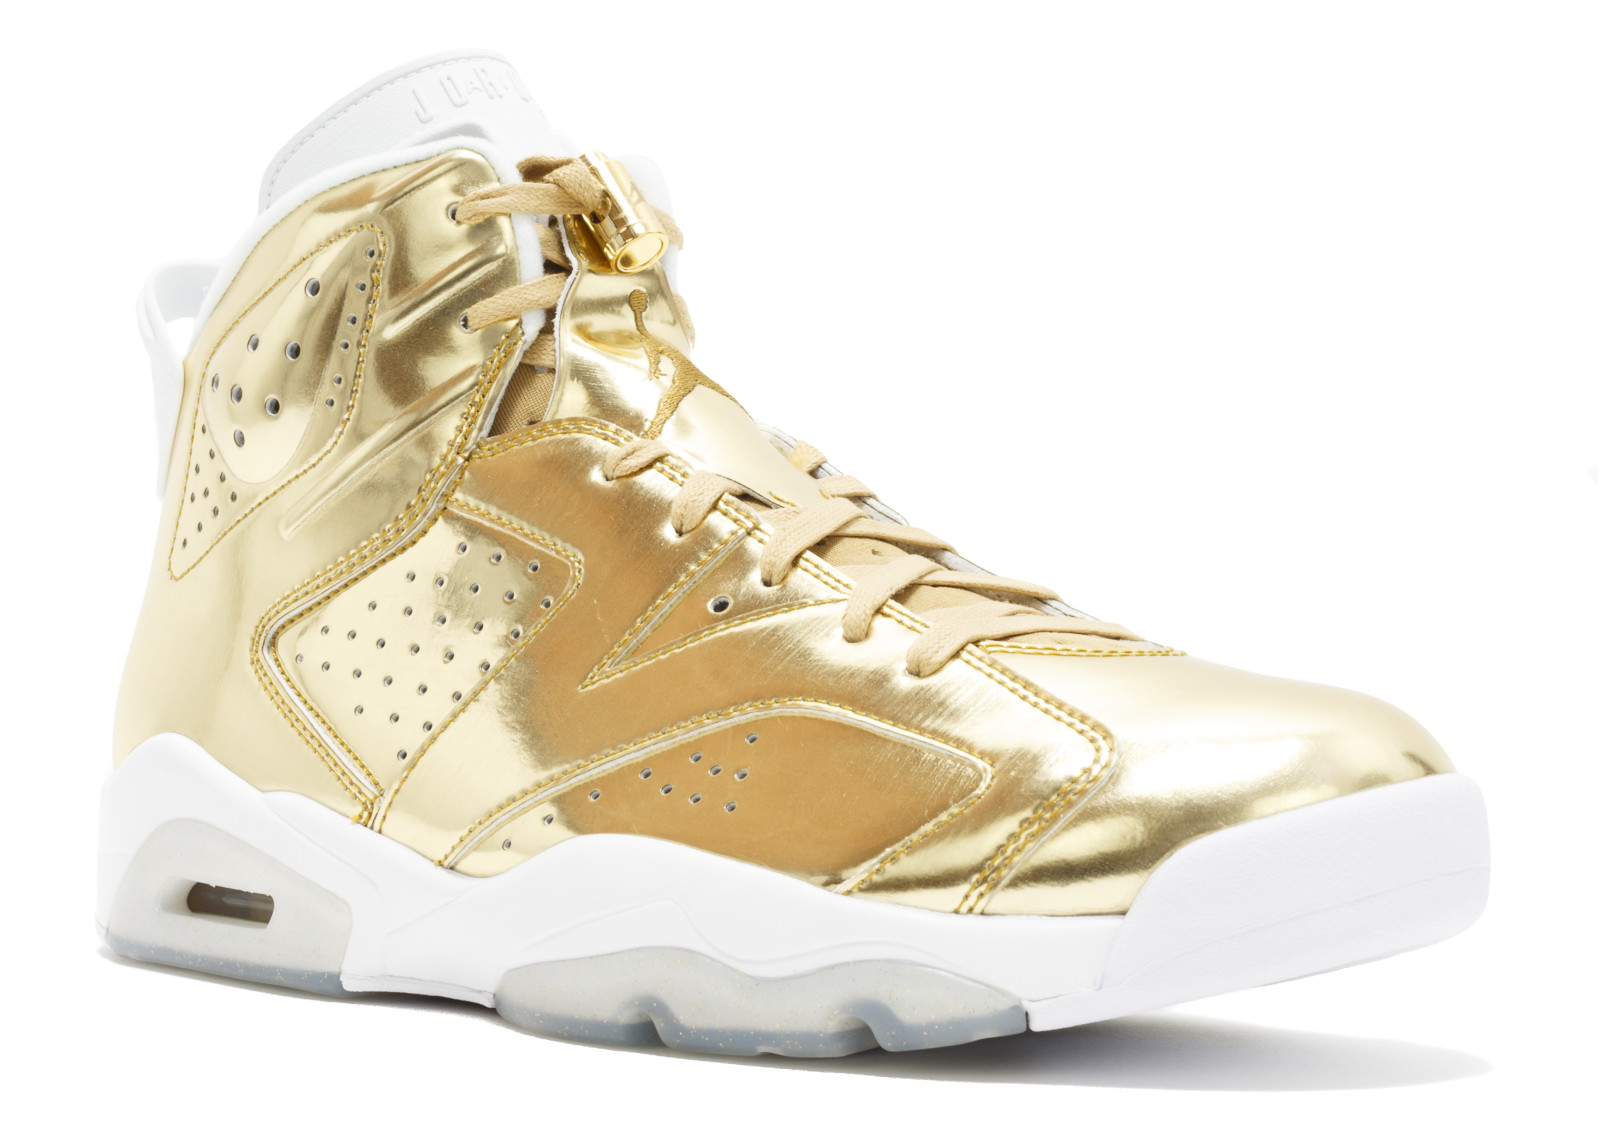 06a4a24300955c Jordan 6 Retro Pinnacle Metallic Gold - 1